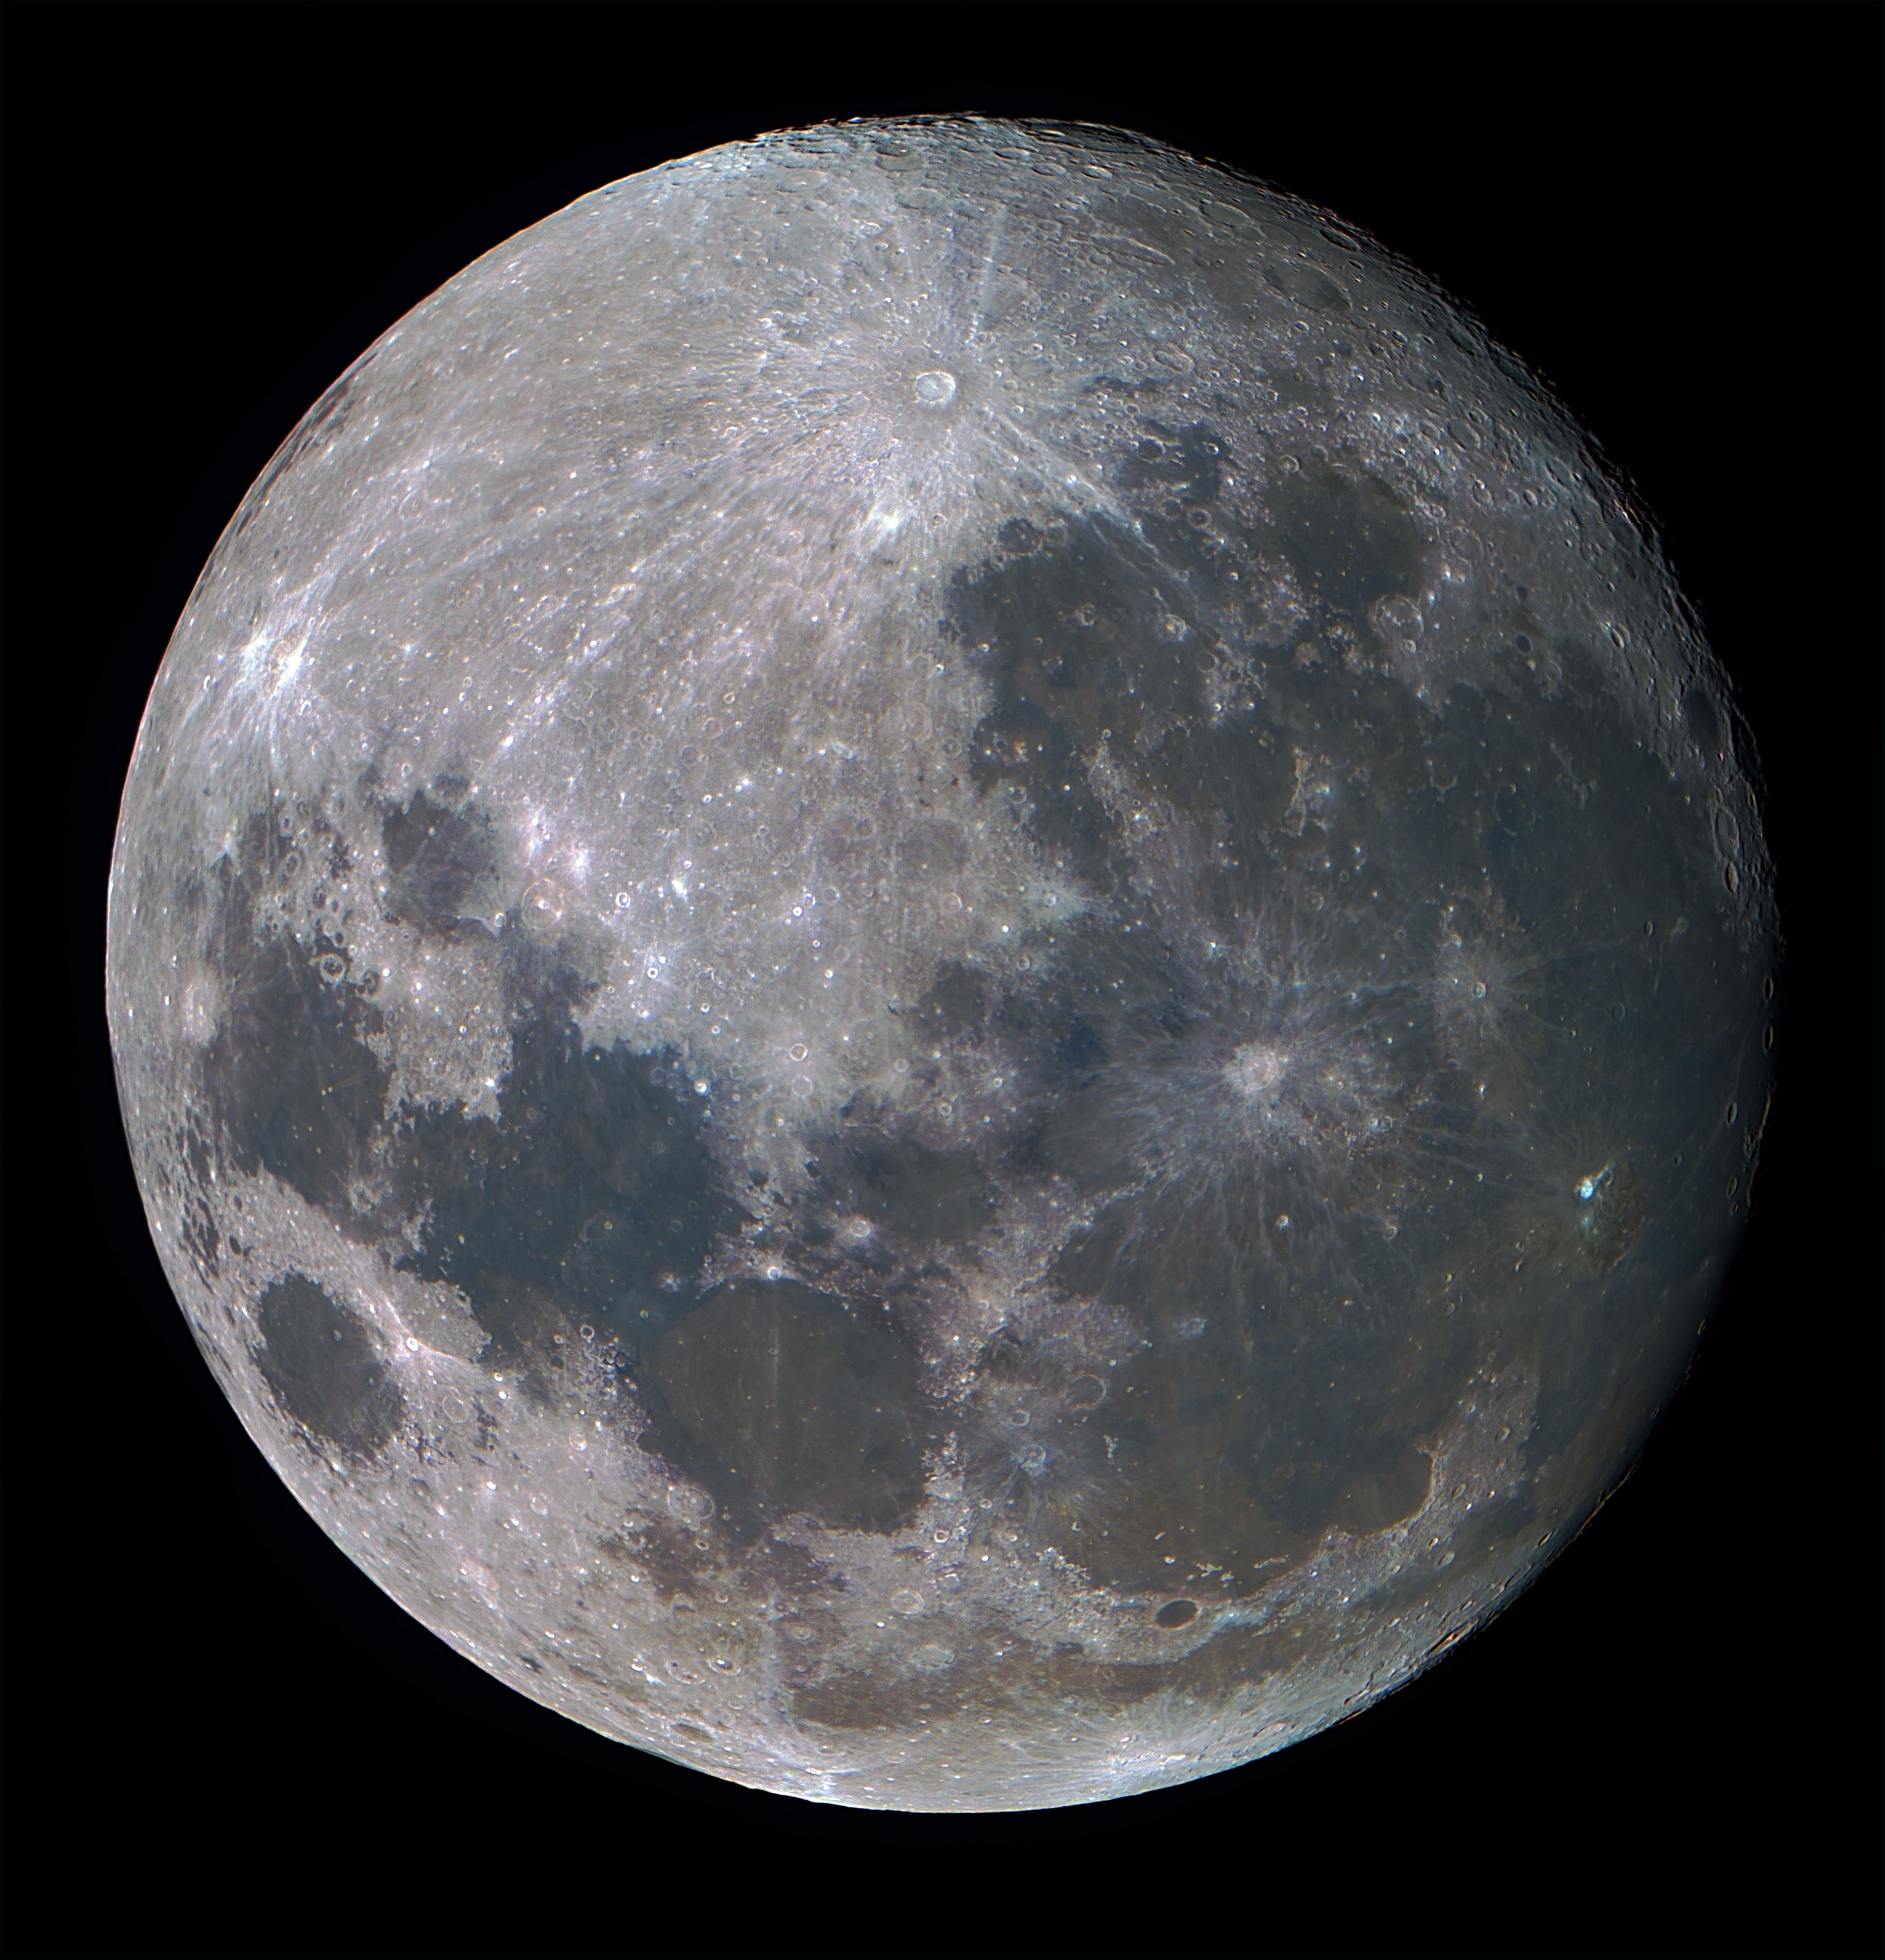 High resolution, close-up photograph of the Earth's moon.